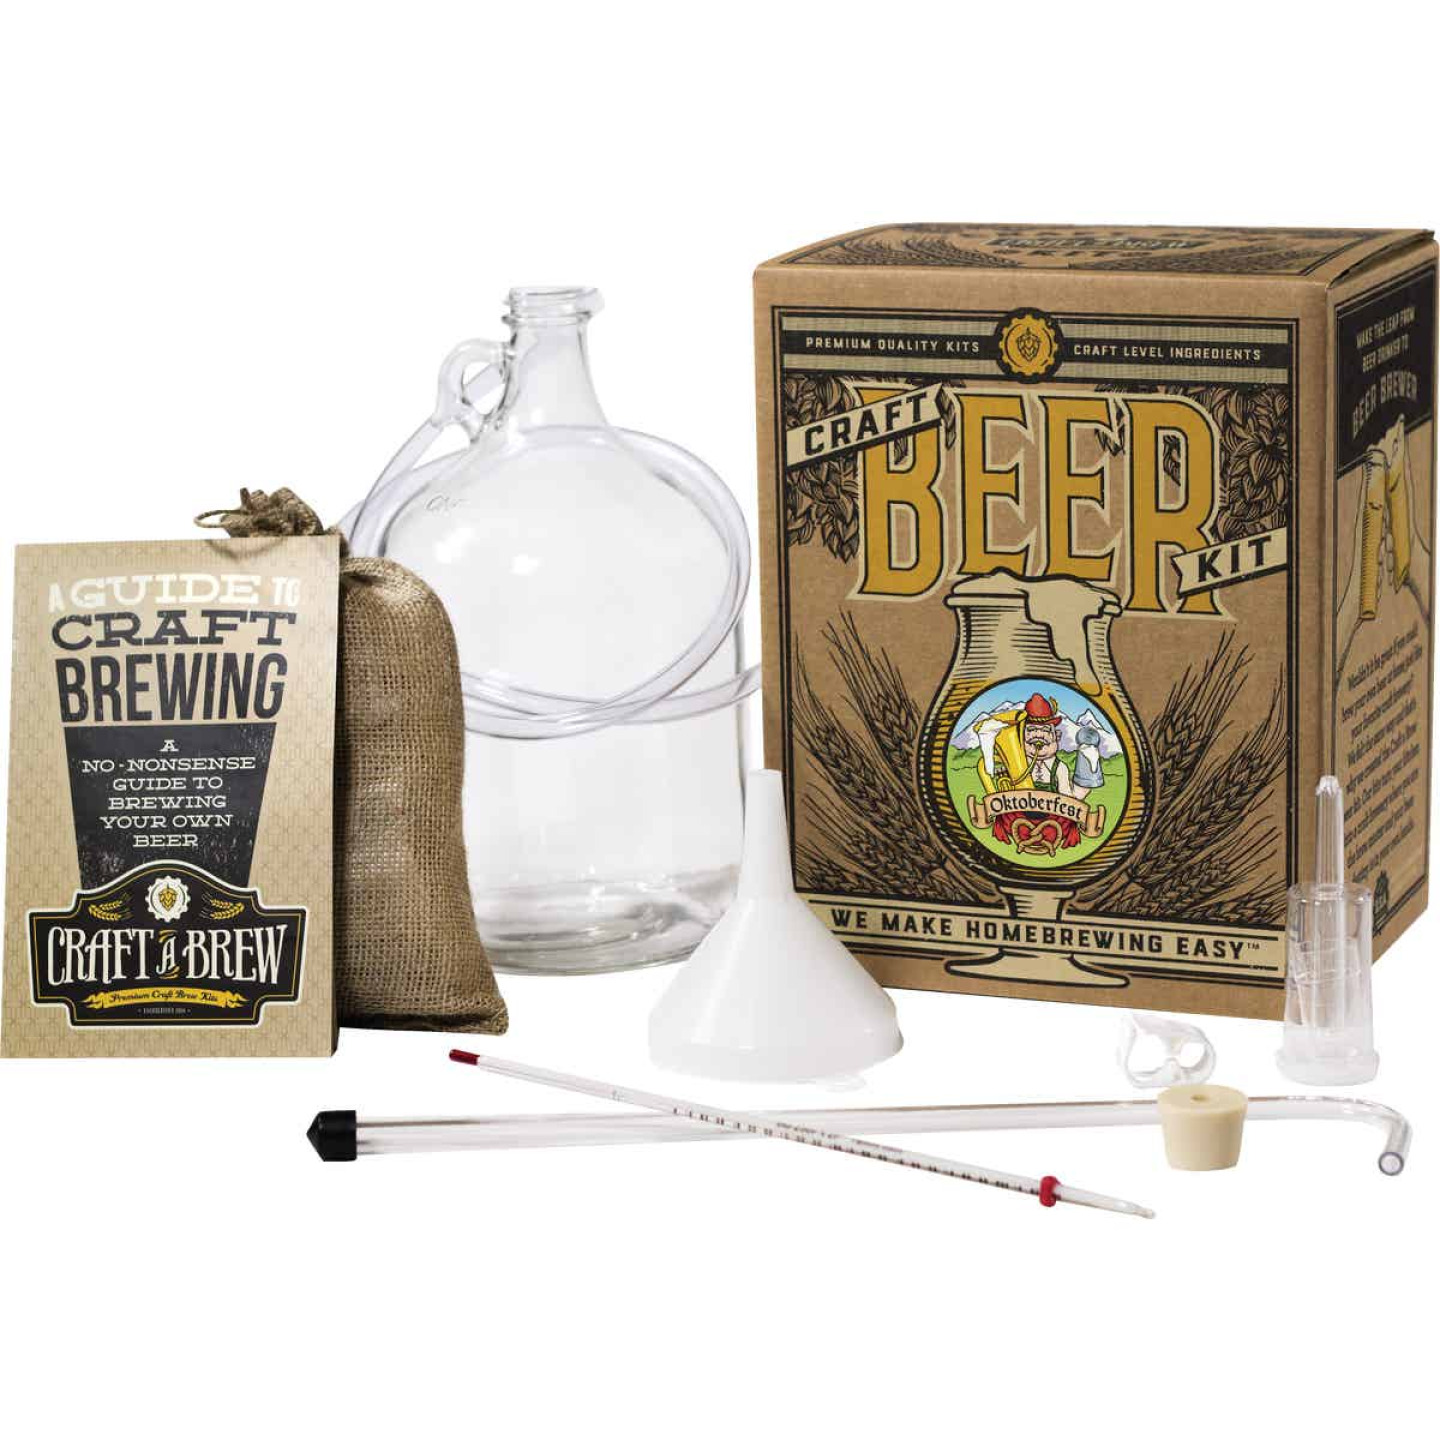 Craft A Brew Oktoberfest Ale Beer Brewing Kit (11-Piece) Image 1